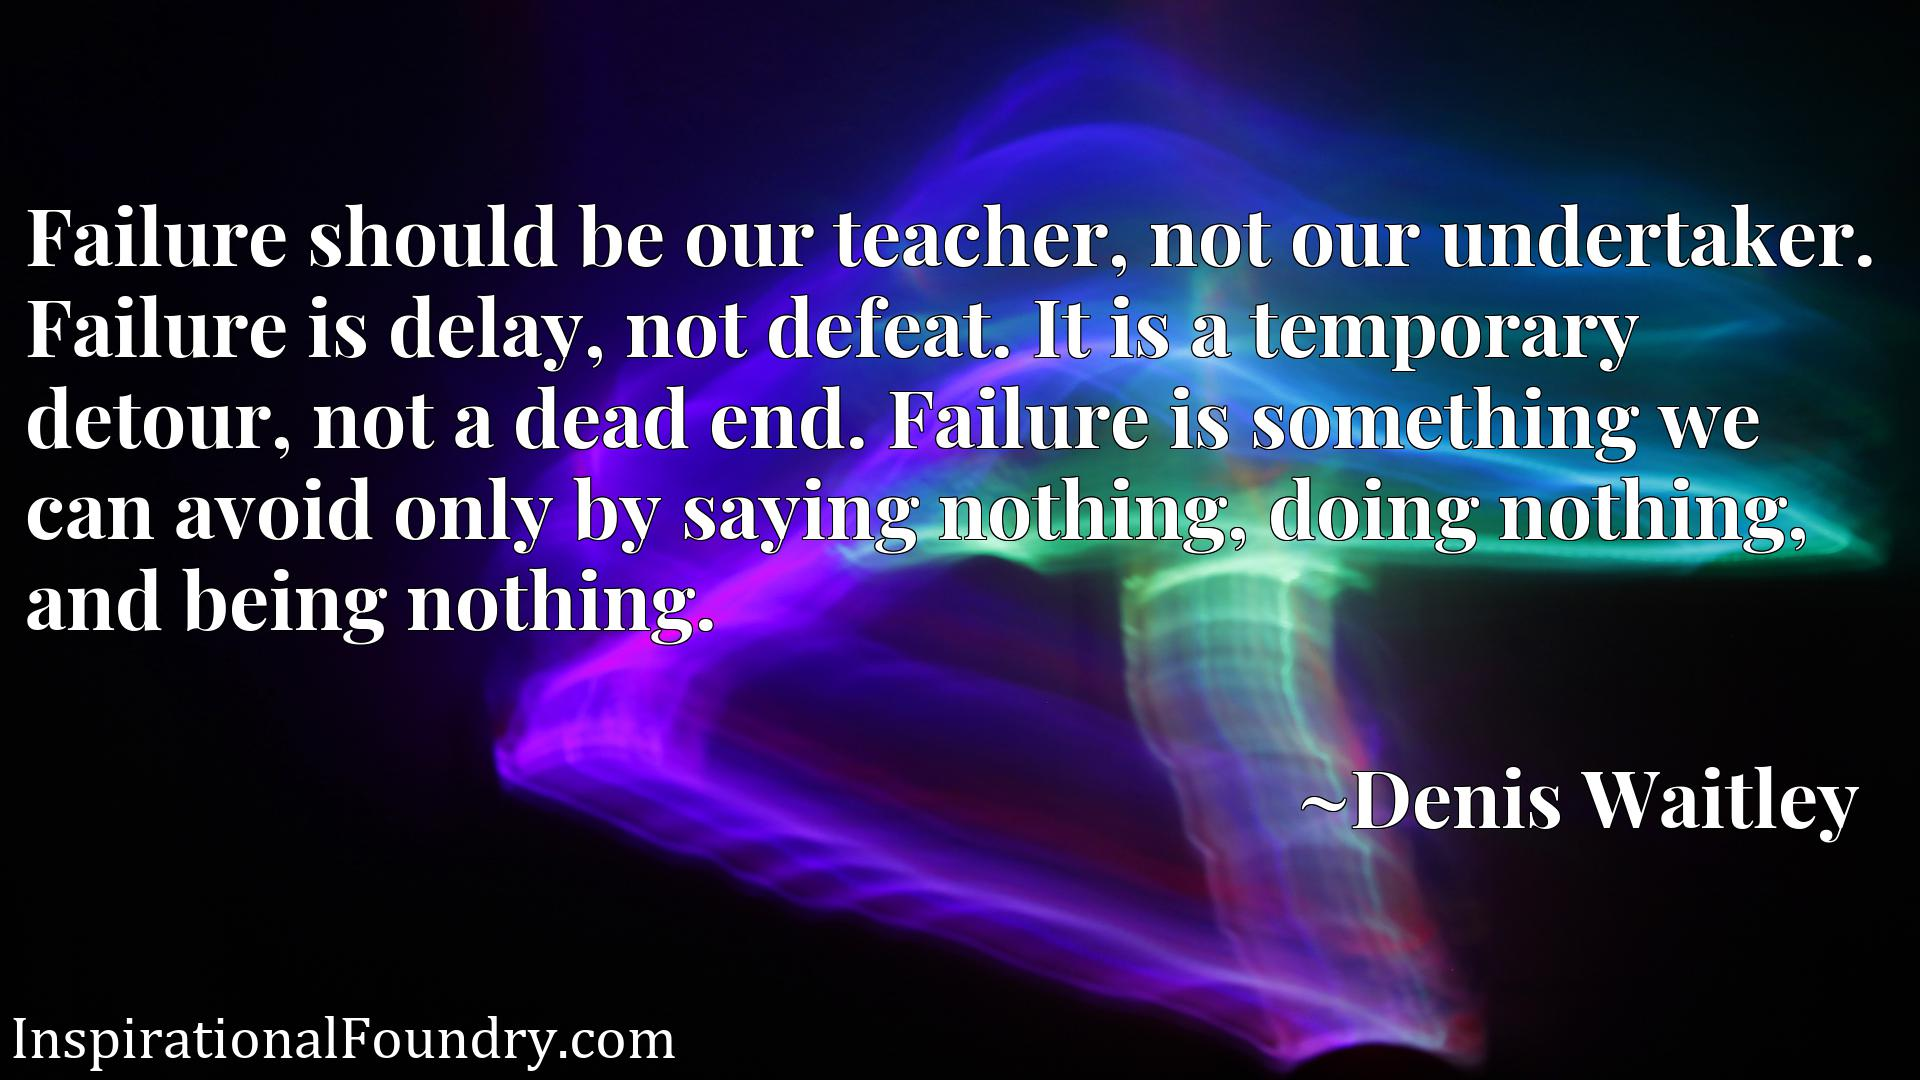 Failure should be our teacher, not our undertaker. Failure is delay, not defeat. It is a temporary detour, not a dead end. Failure is something we can avoid only by saying nothing, doing nothing, and being nothing.